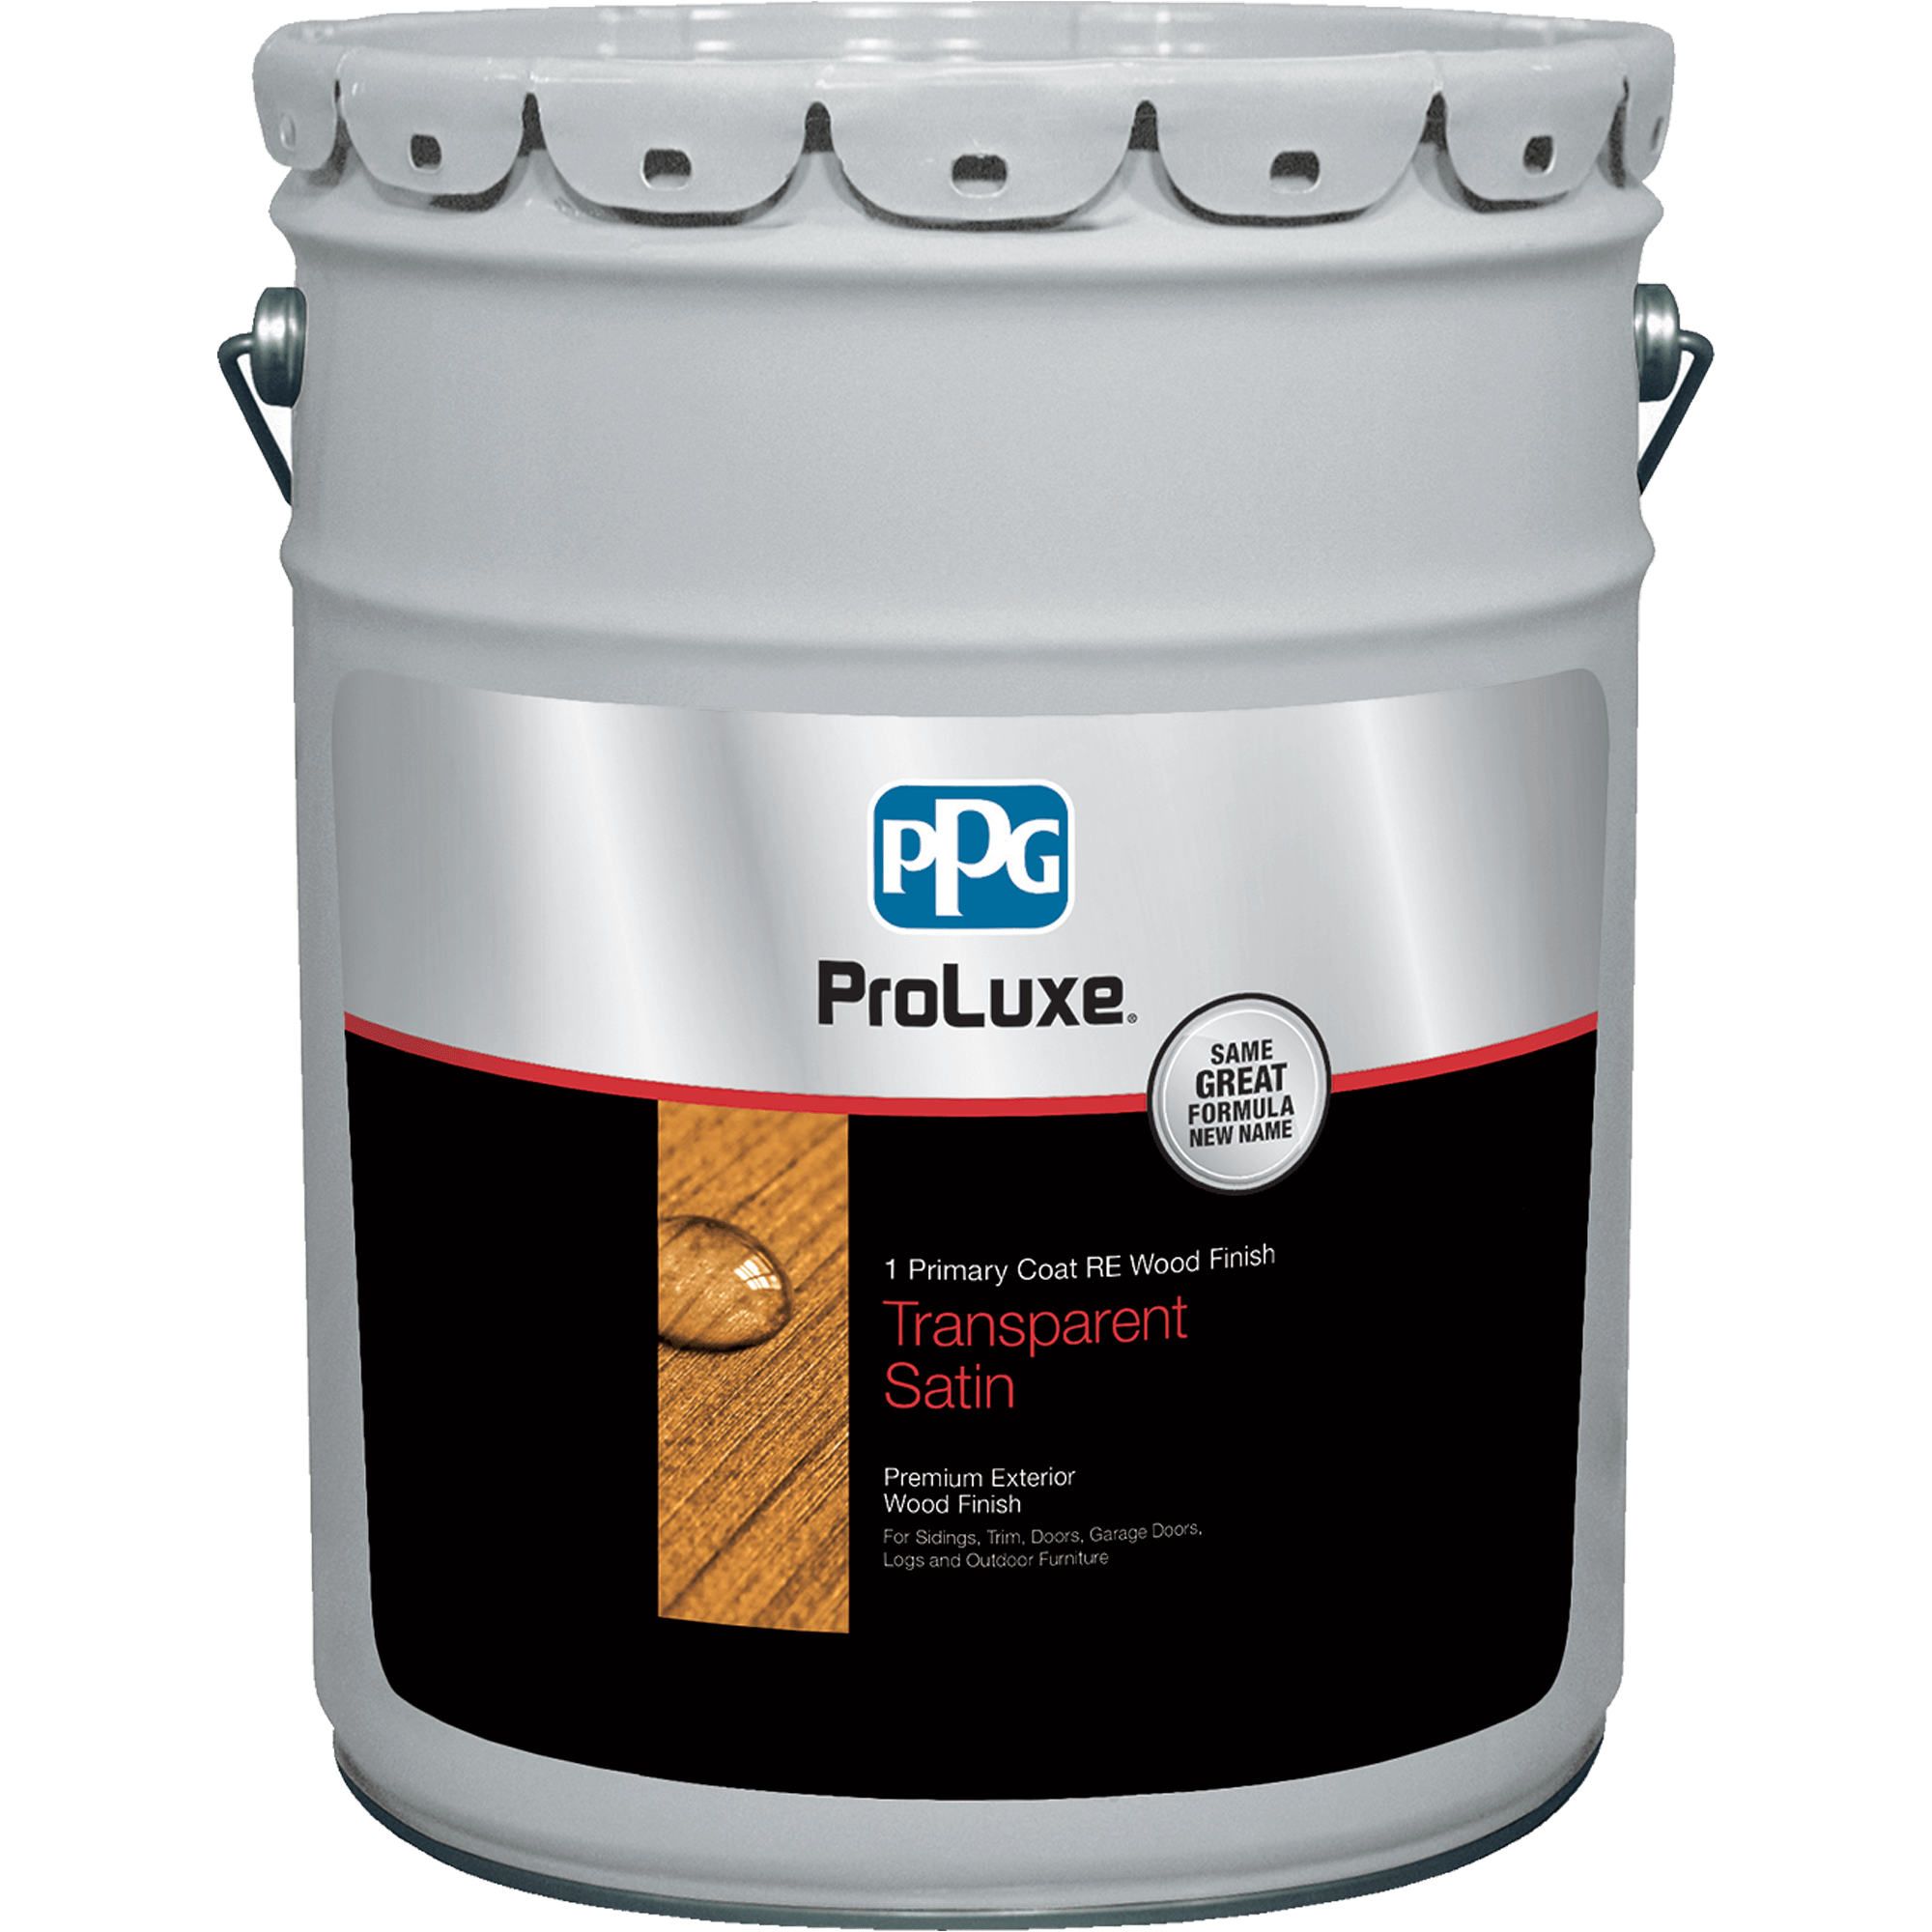 PROLUXE<sup>®</sup> 1 Primary Coat RE Wood Finish 5 Gallon